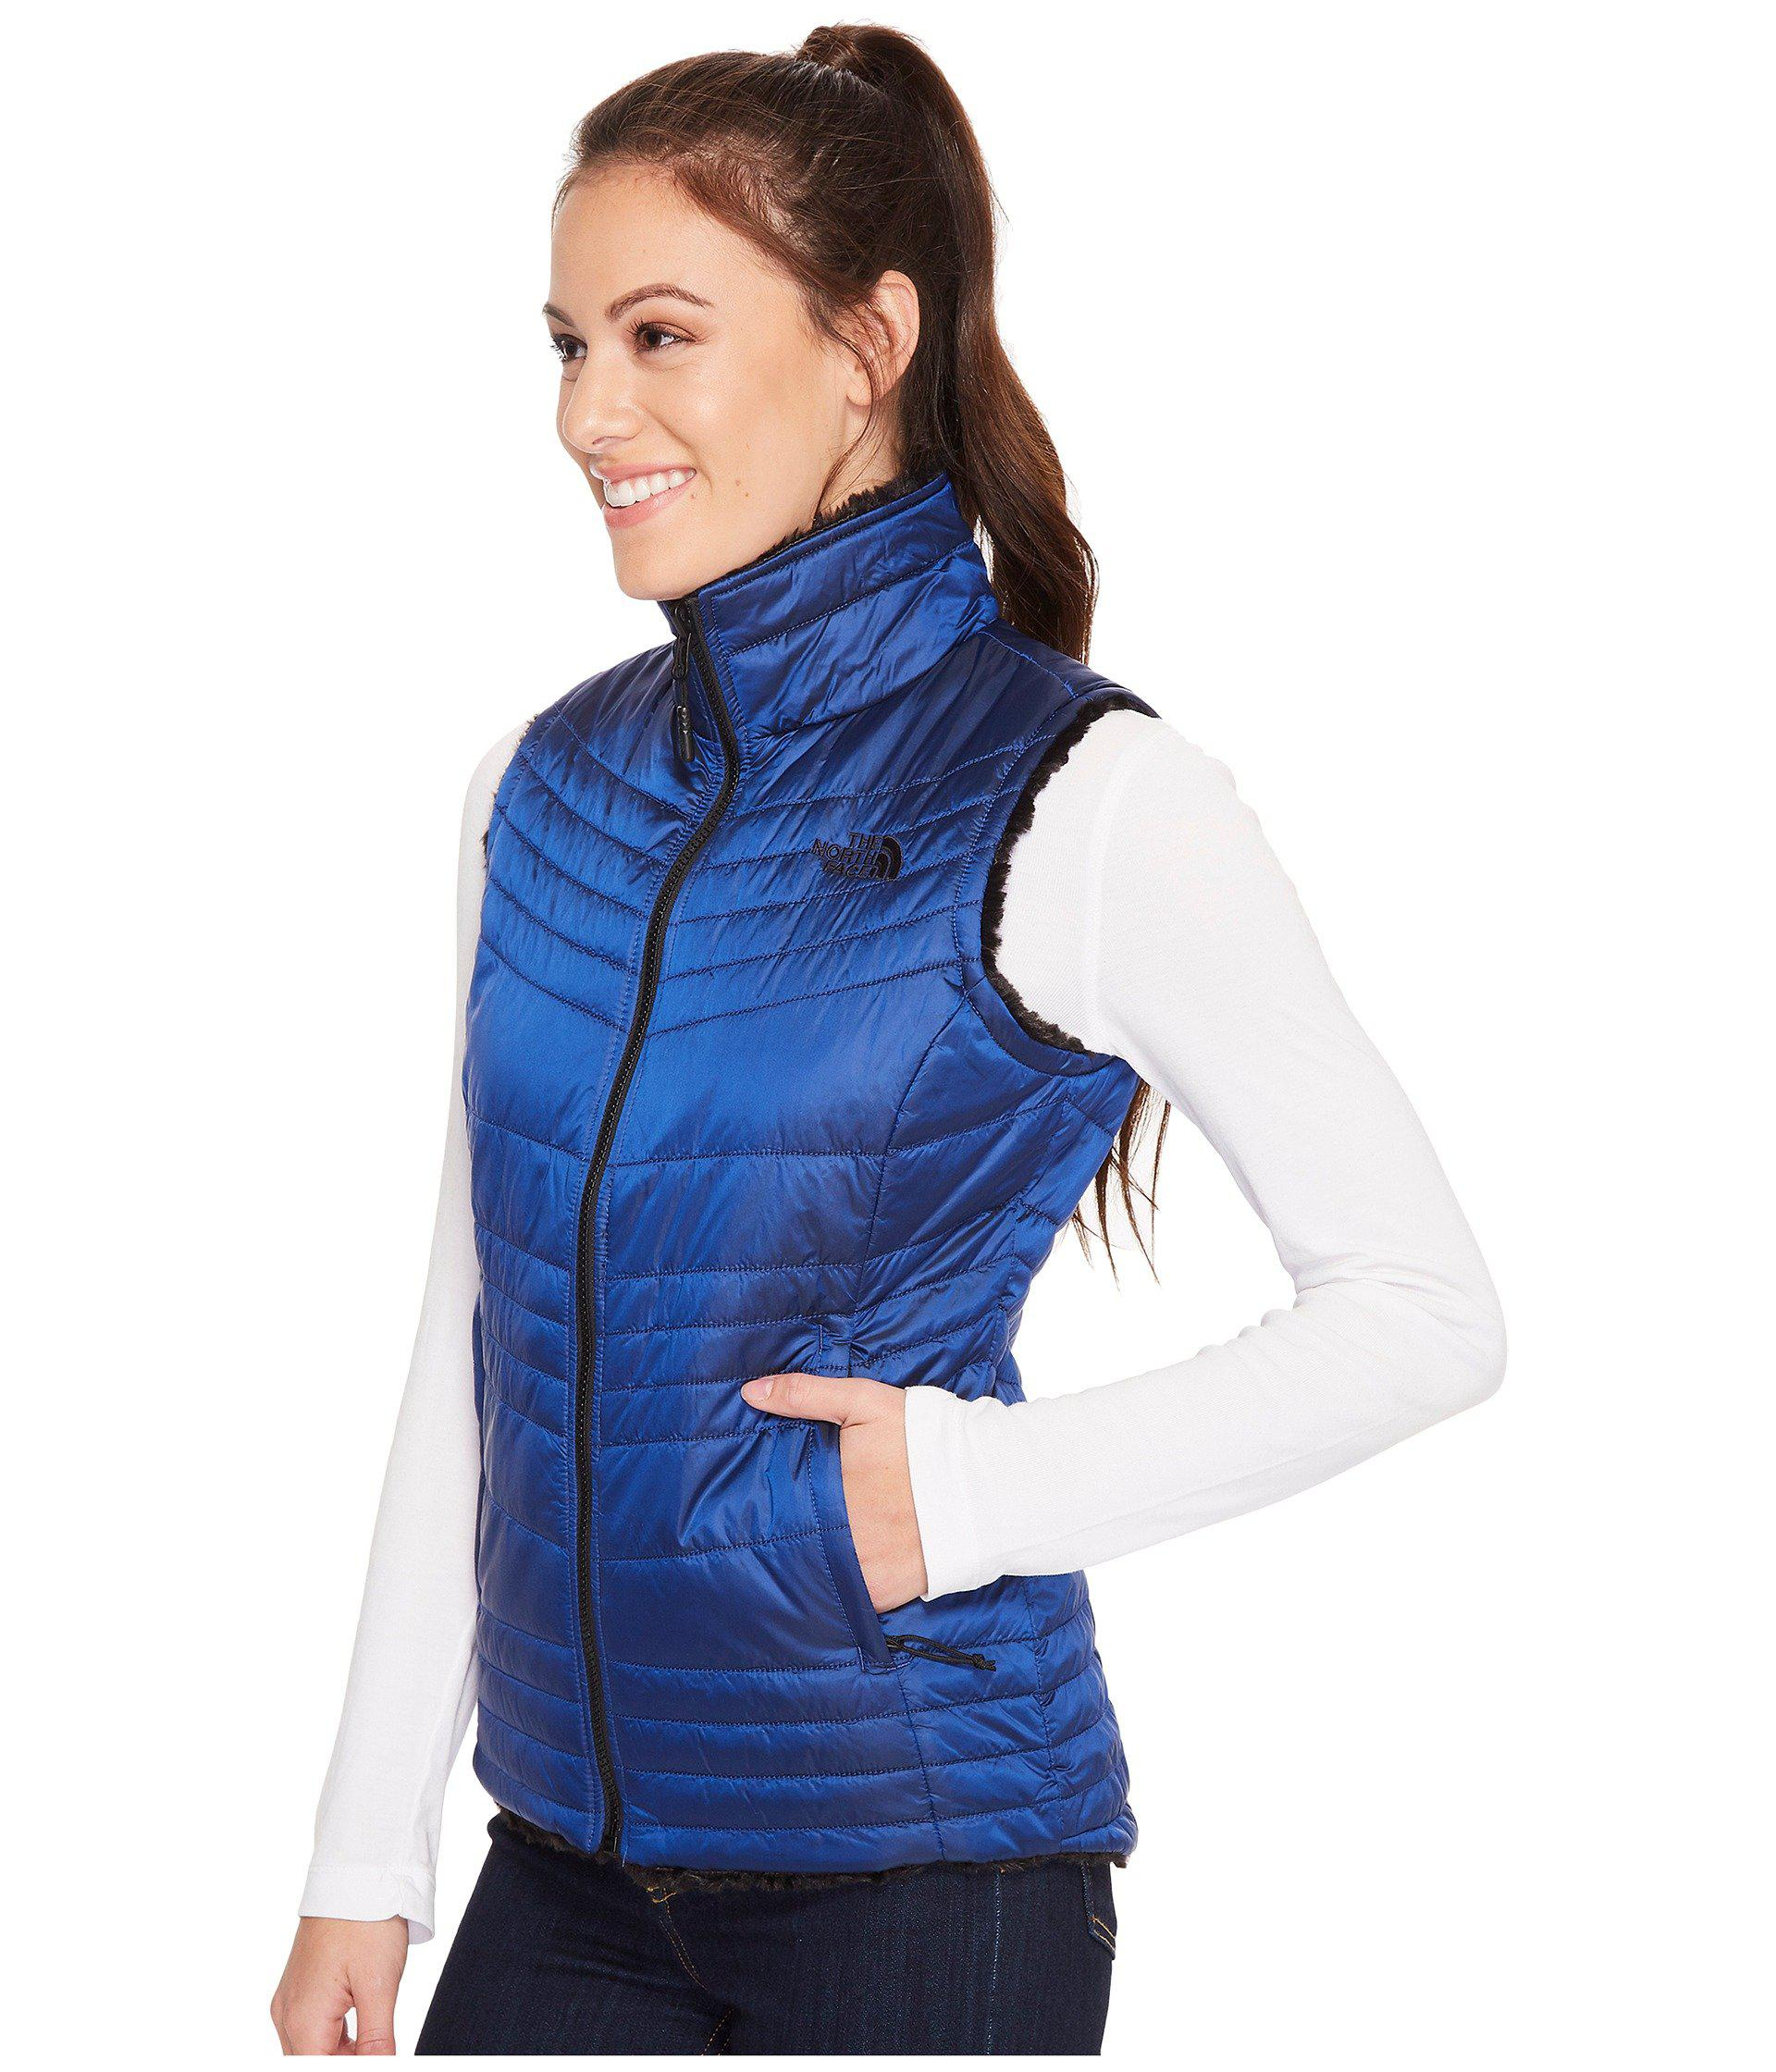 2324228f216b Lyst - The North Face Mossbud Swirl Vest in Blue - Save 26%